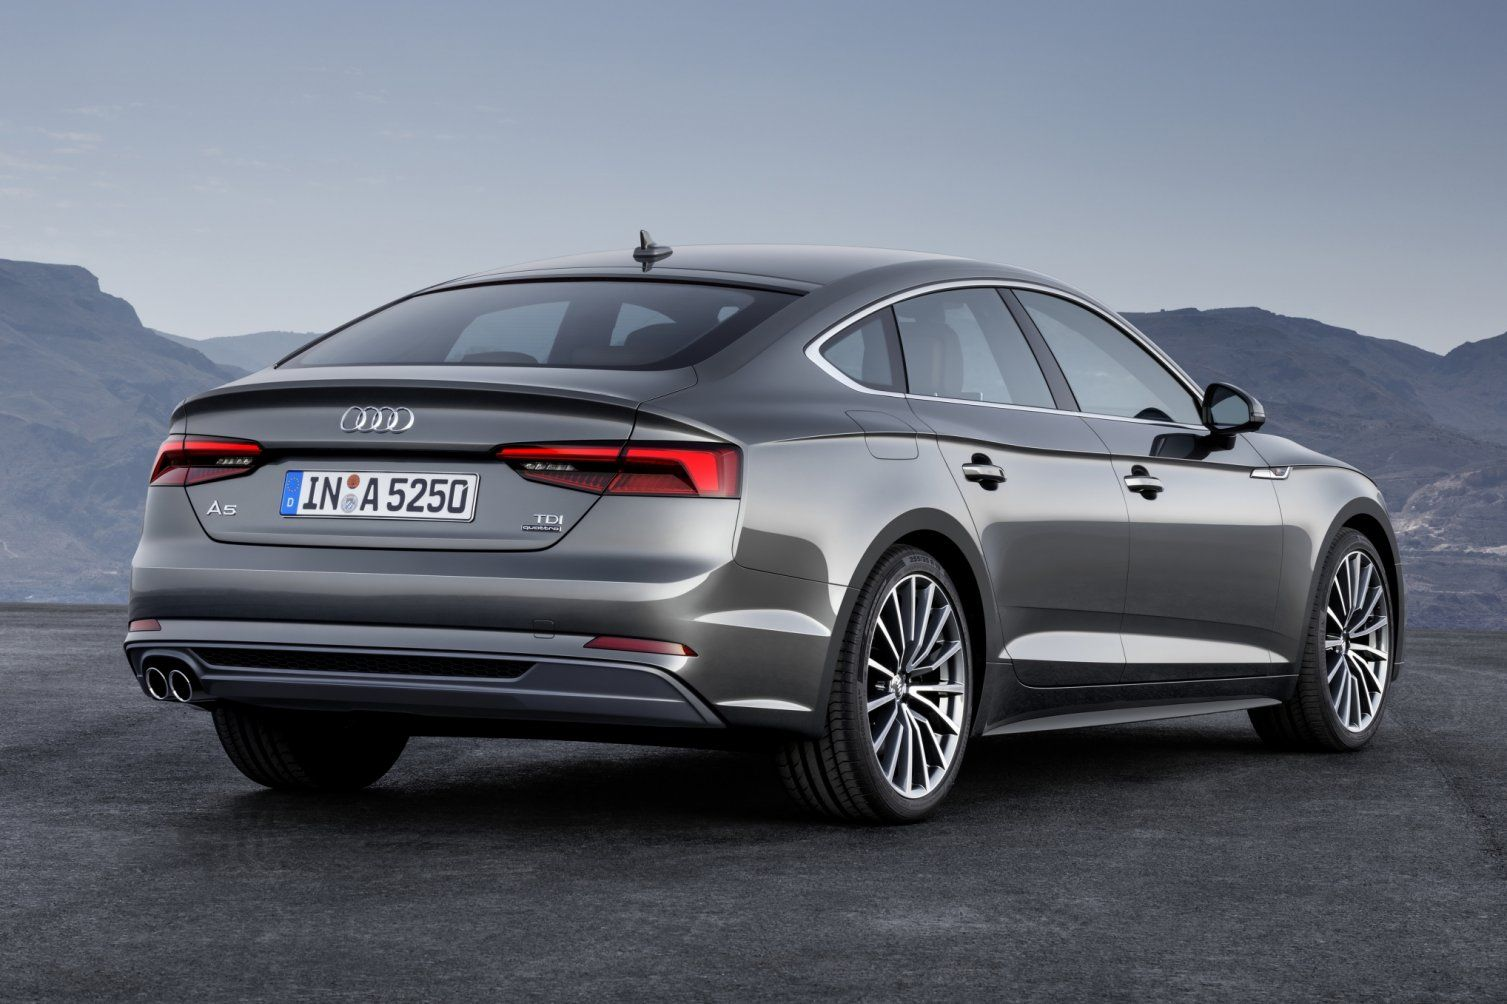 Cool audi 2017 cool audi 2017 new audi a5 sportback diesel ultra 2017 review pictures c car24 world bayers check more at http car24